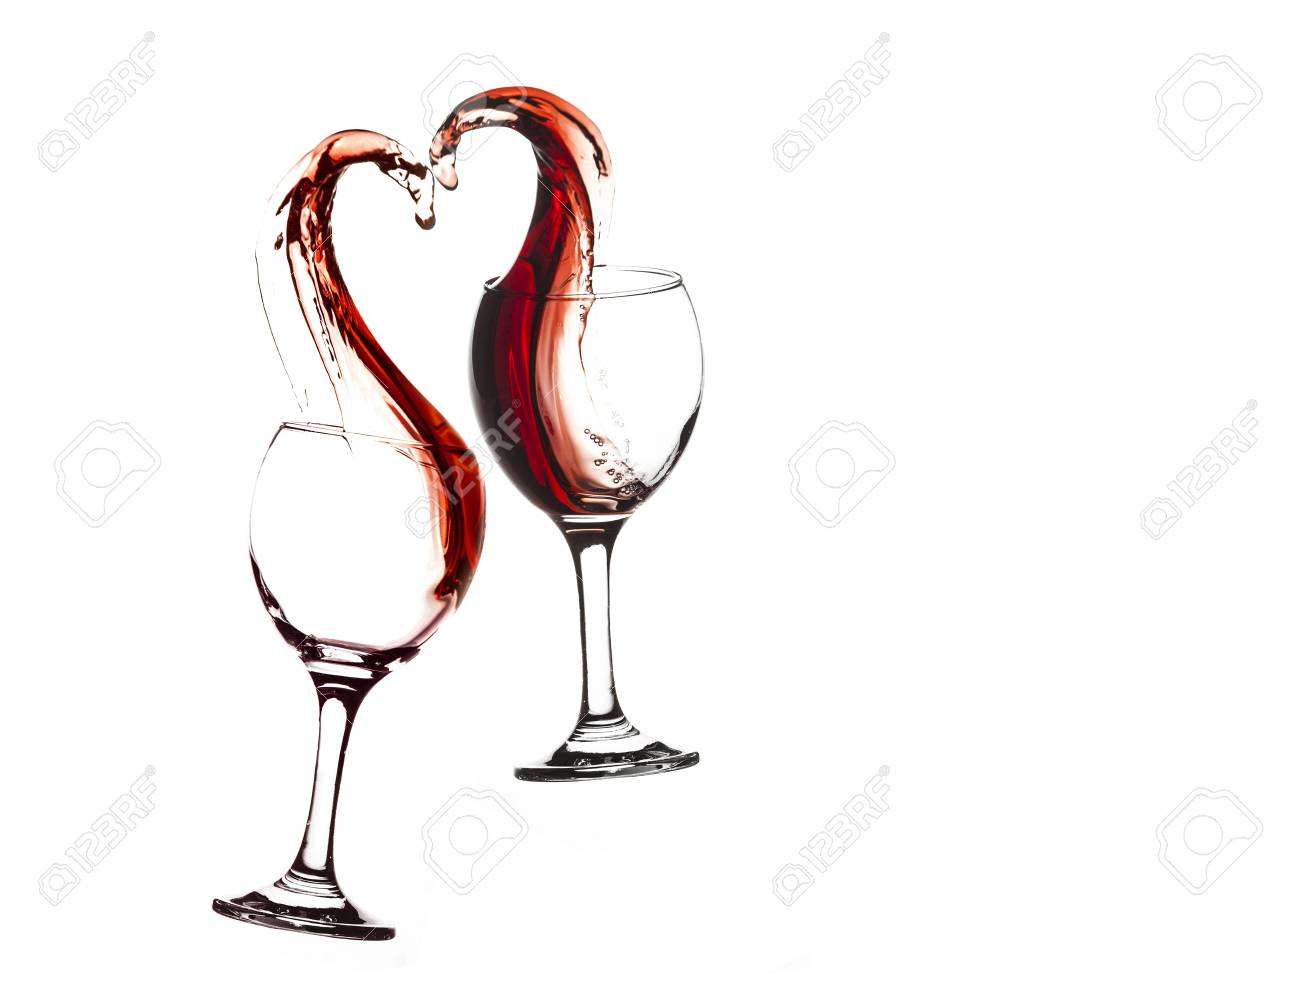 e1b4c06806e9 Two glasses of red wine with abstract heart splash on a white background  Stock Photo -